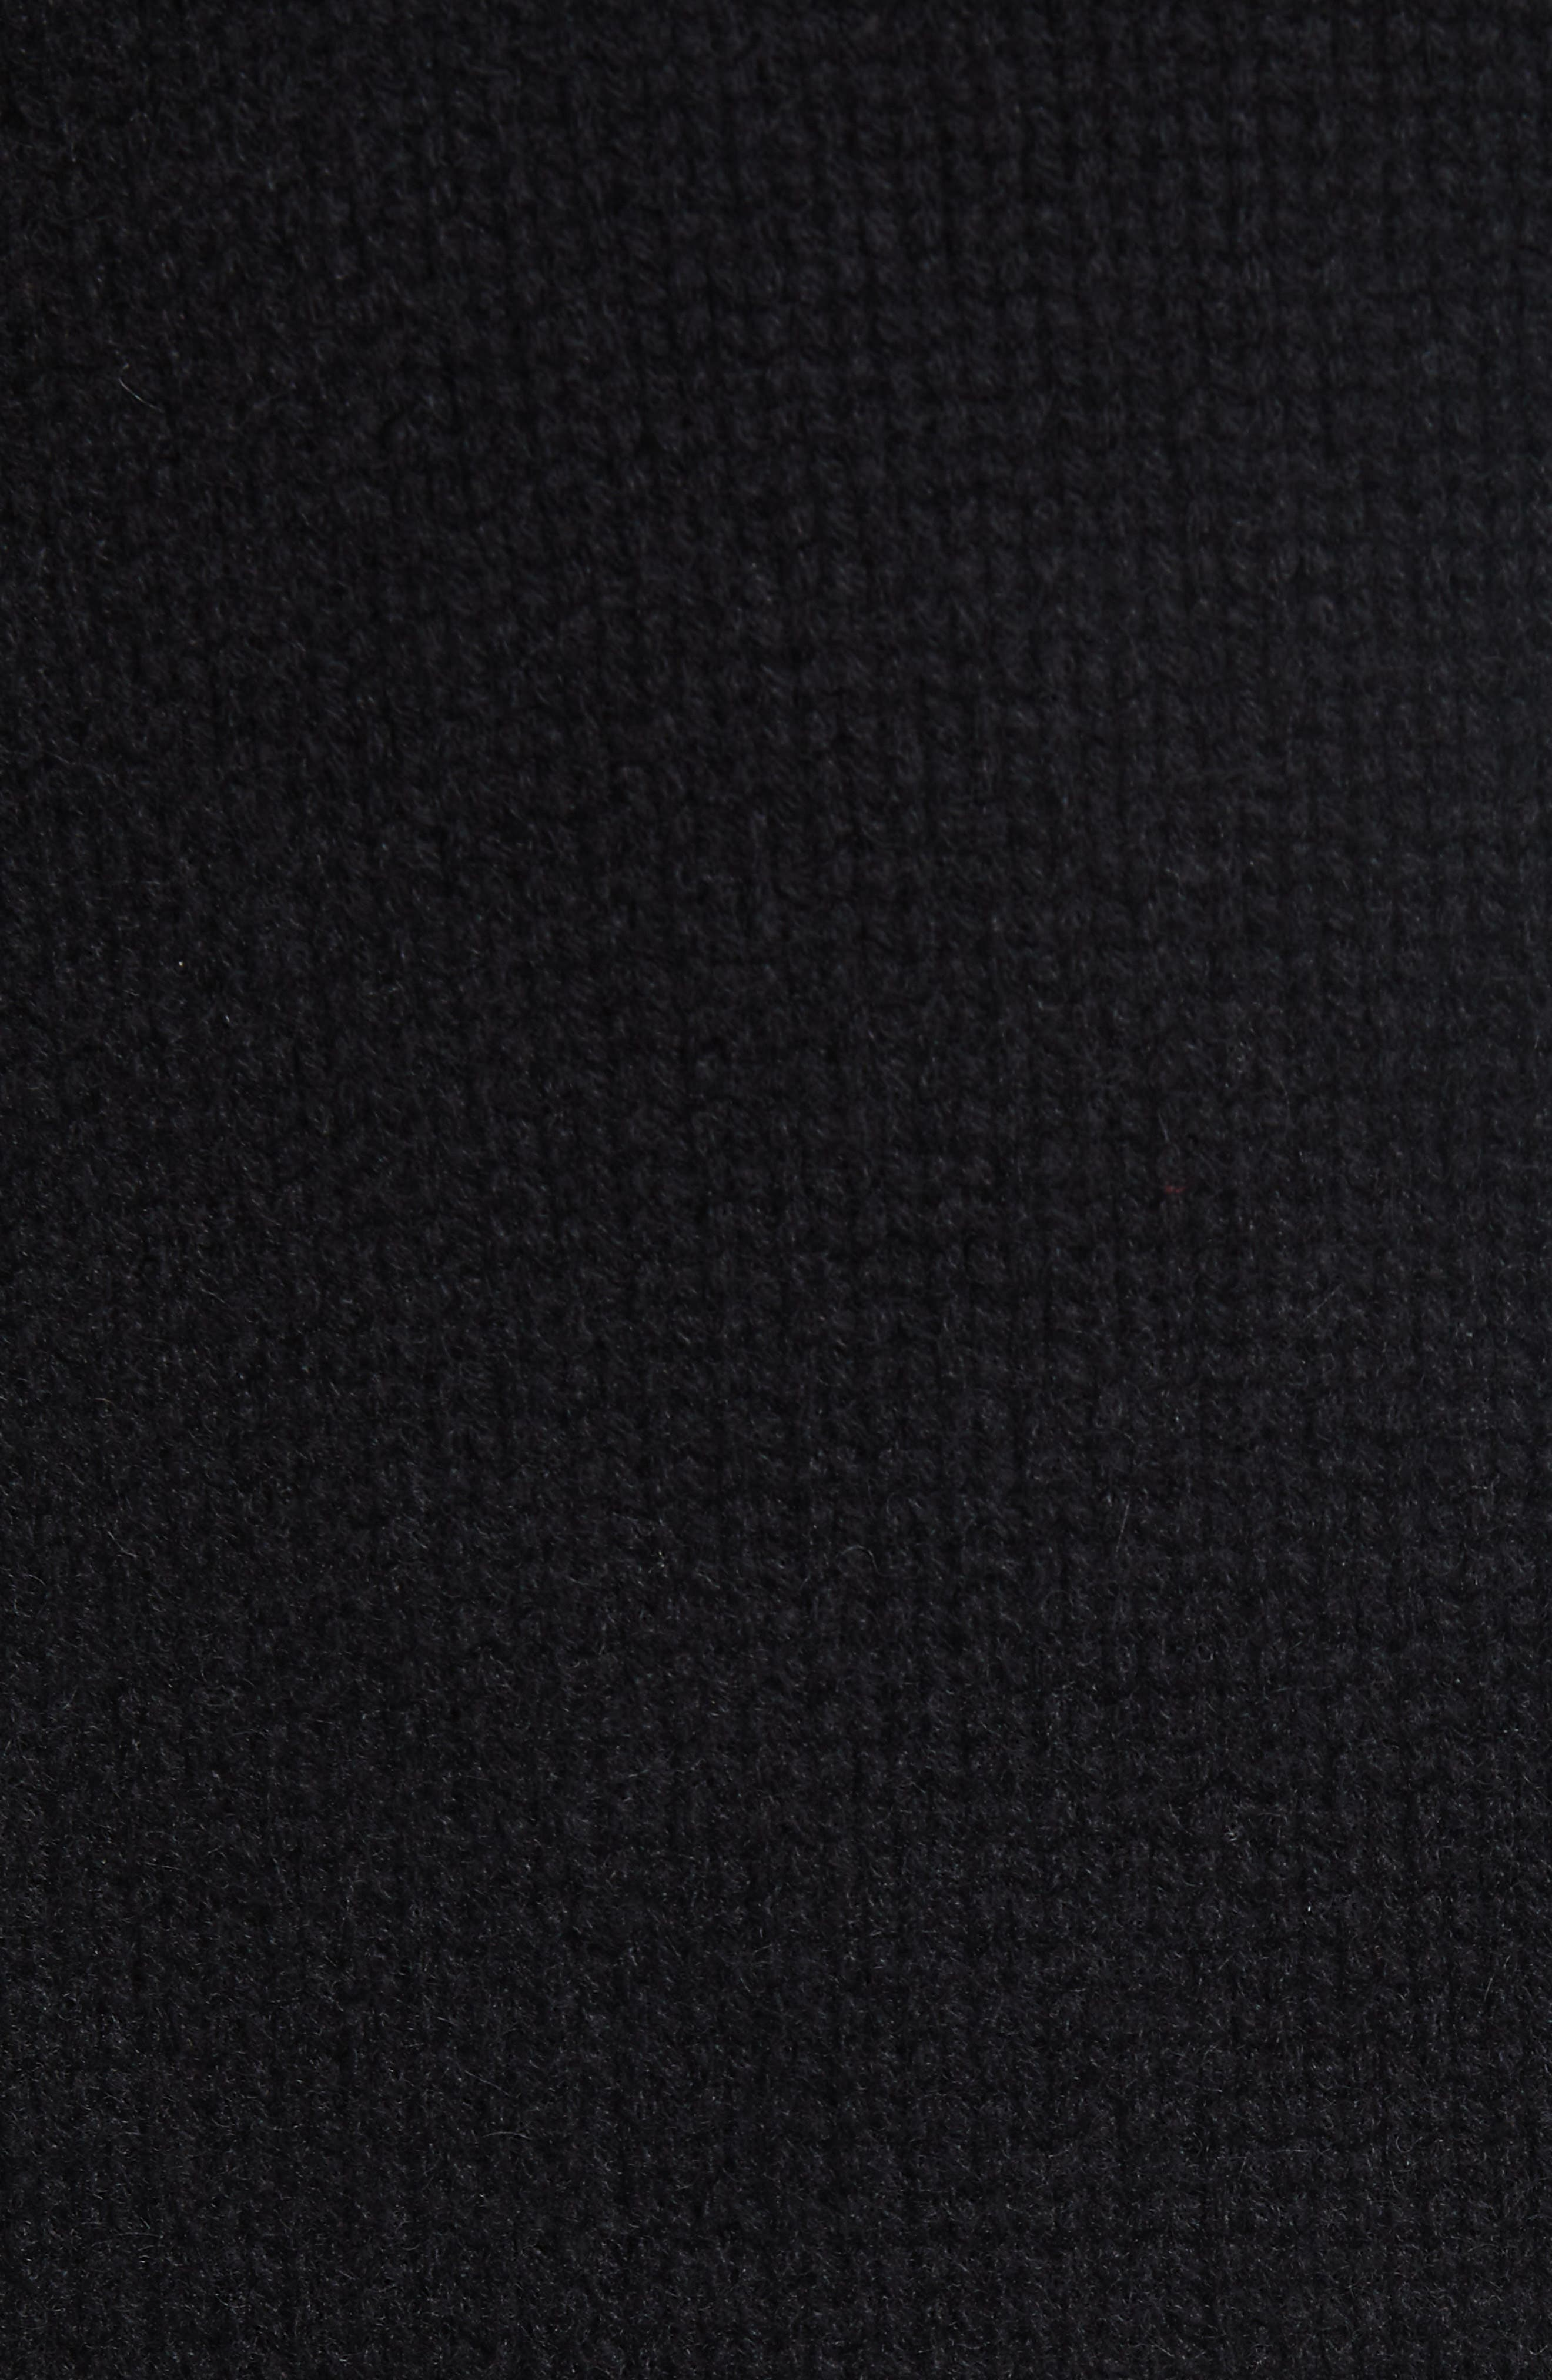 Relaxed Cashmere Sweater,                             Alternate thumbnail 5, color,                             BLACK